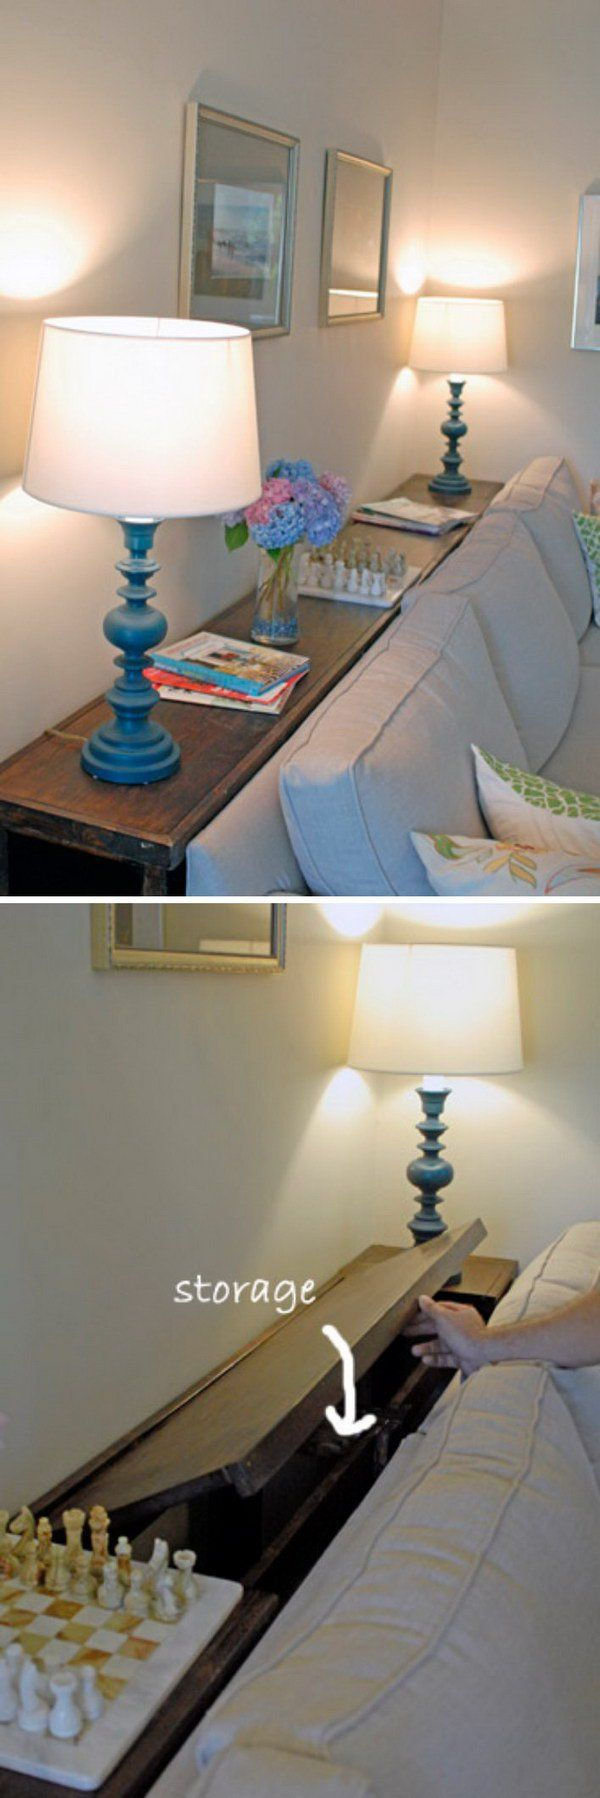 Place a Little Console Table with Storage Behind Your Couch so You ...